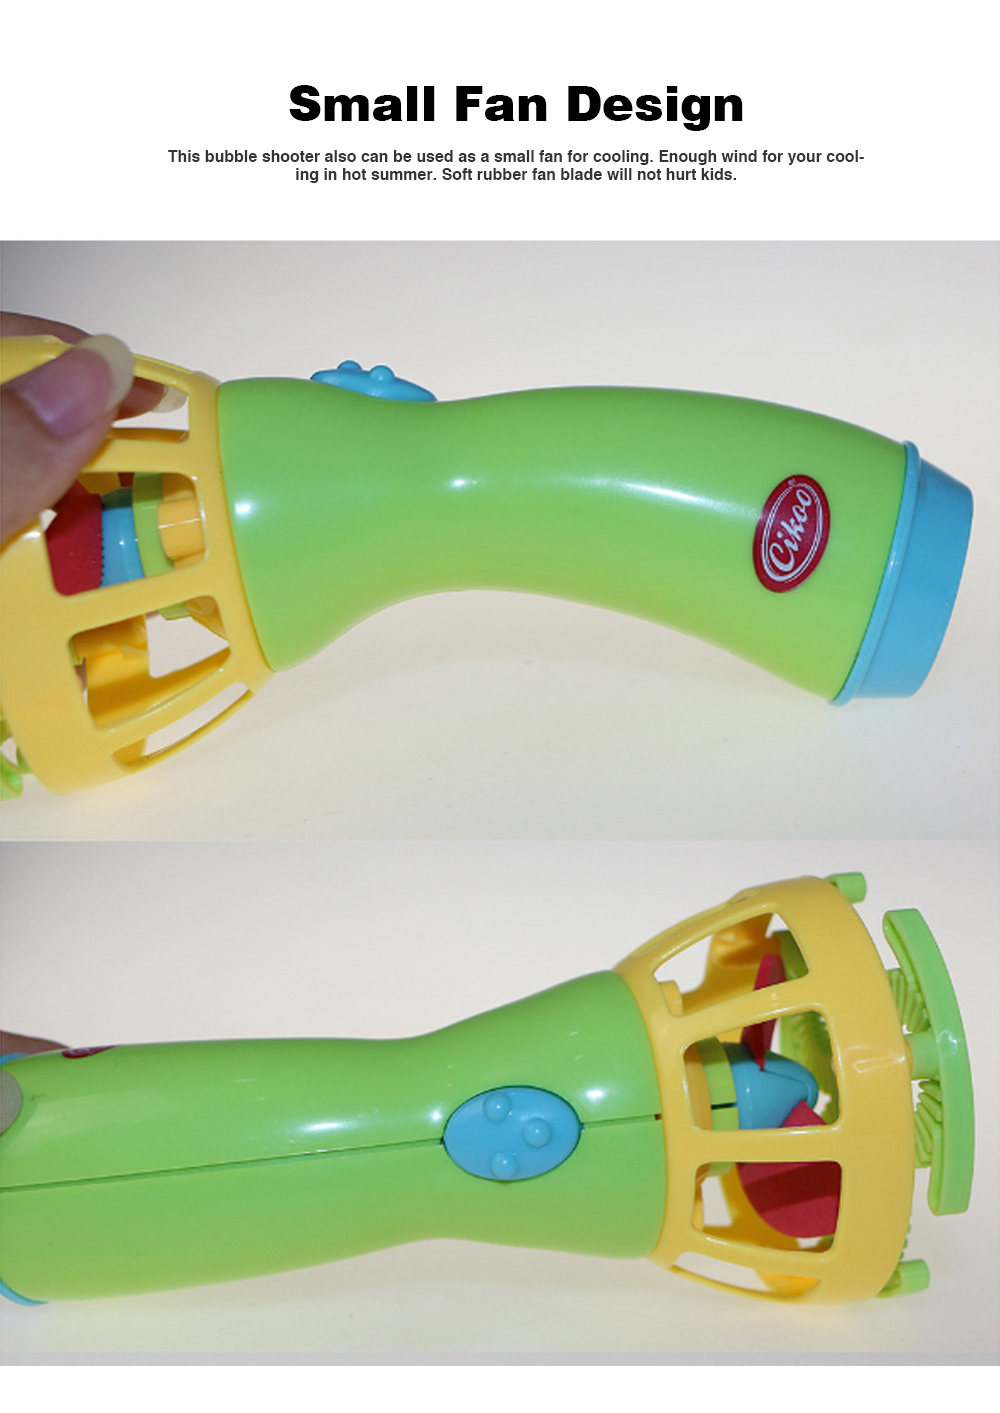 Bubble Gun Shooter Electric Toy Blaster with 5 Barrels, Leak Resistant Bubble Machine with Small Fan for Kids to Cooling 2